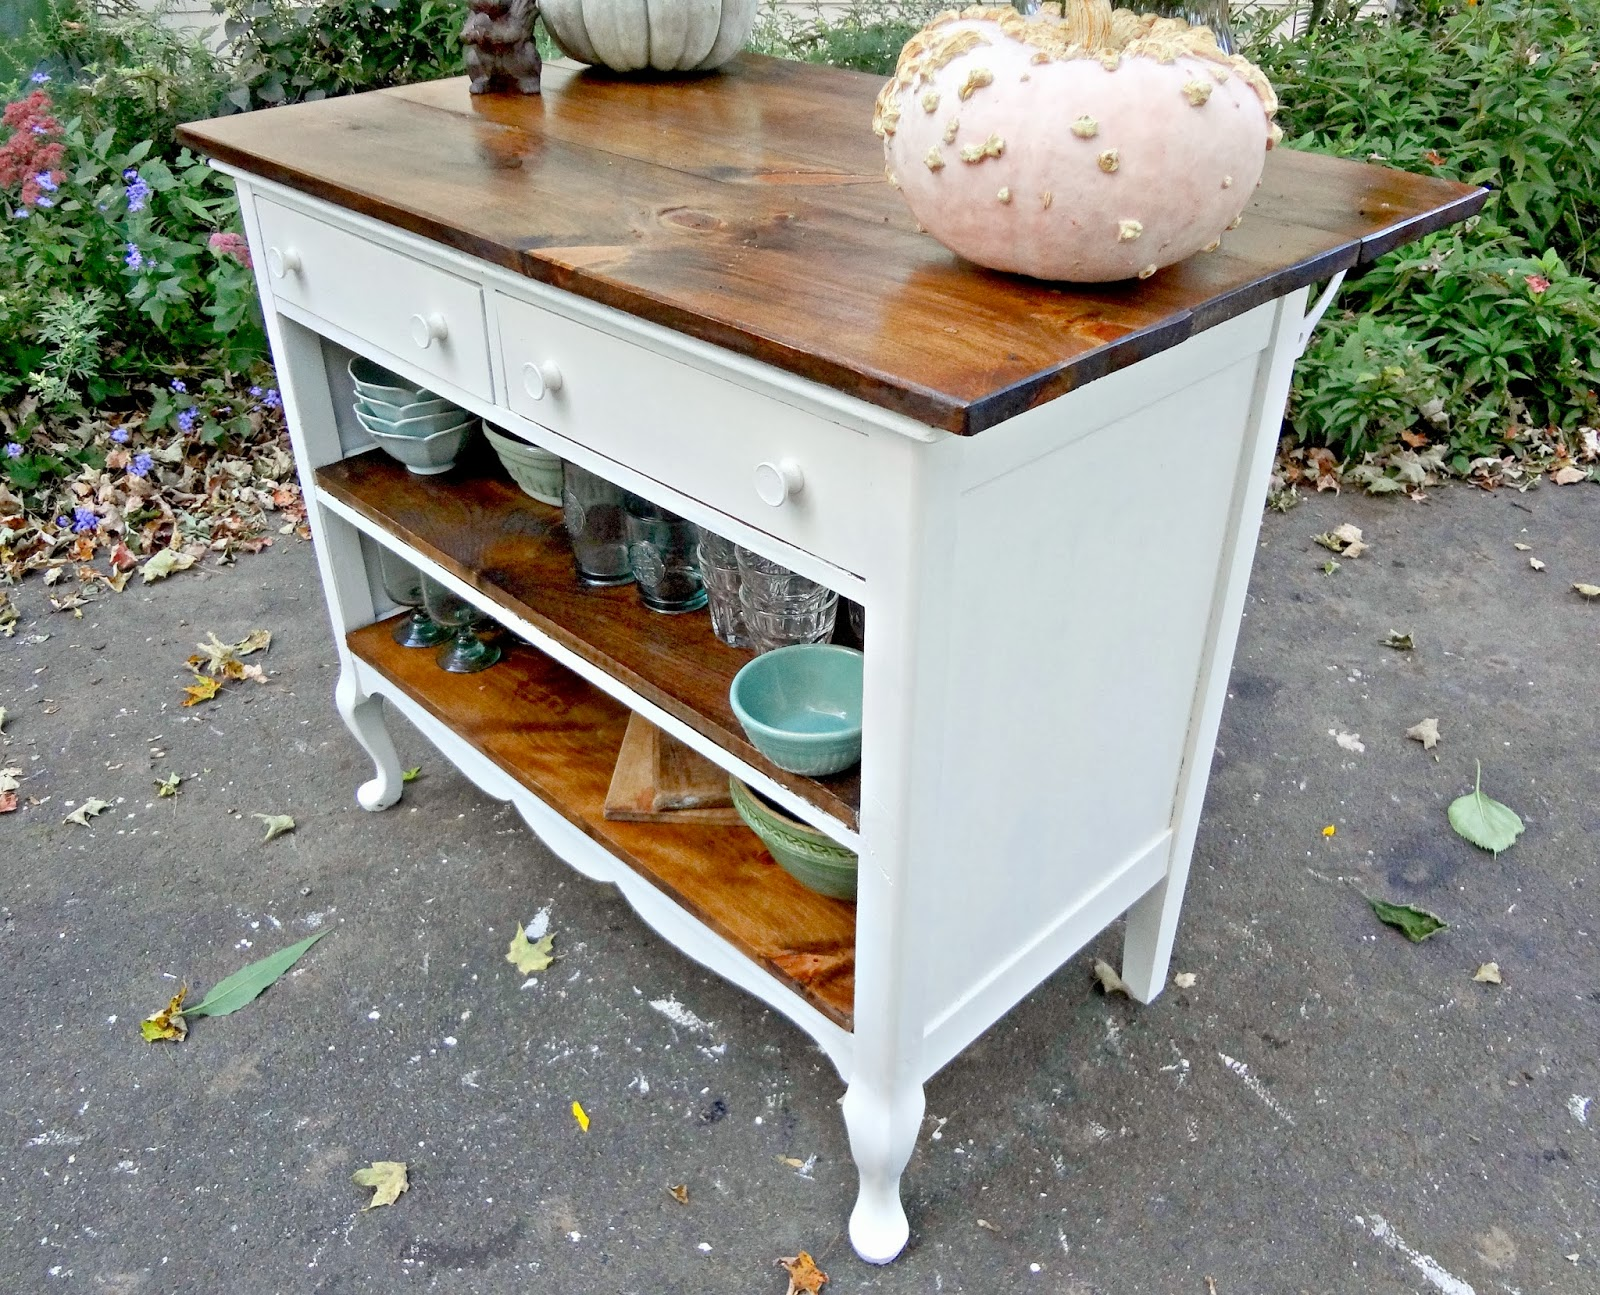 Heir and space antique dresser turned kitchen island for Kitchen island with drawers and seating